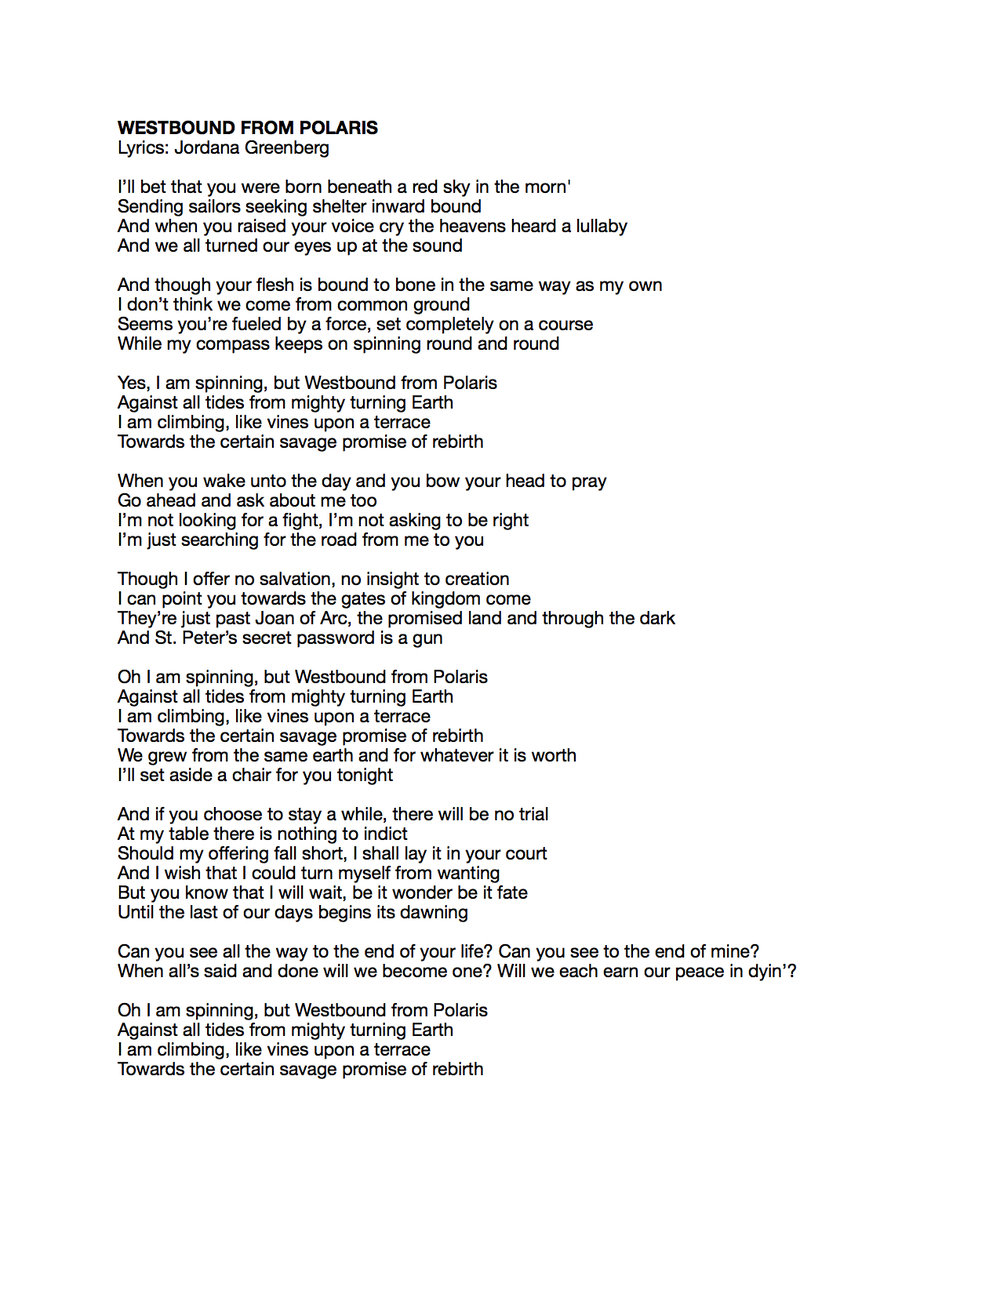 Westbound from Polaris Lyrics.jpeg